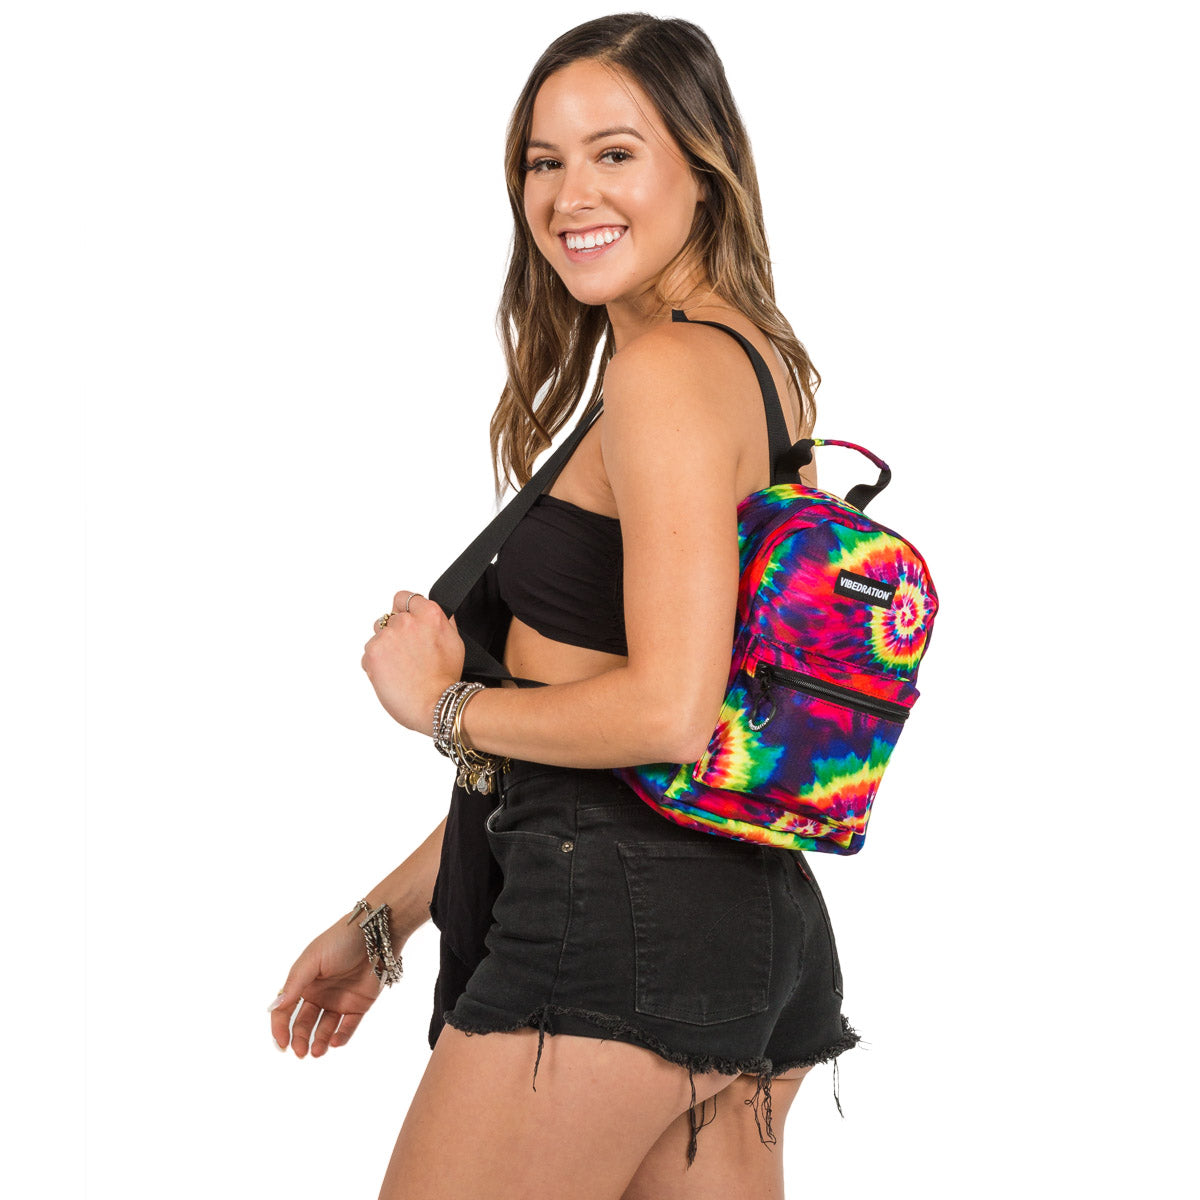 Tie-Dye Printed Mini Backpack for Music Festivals